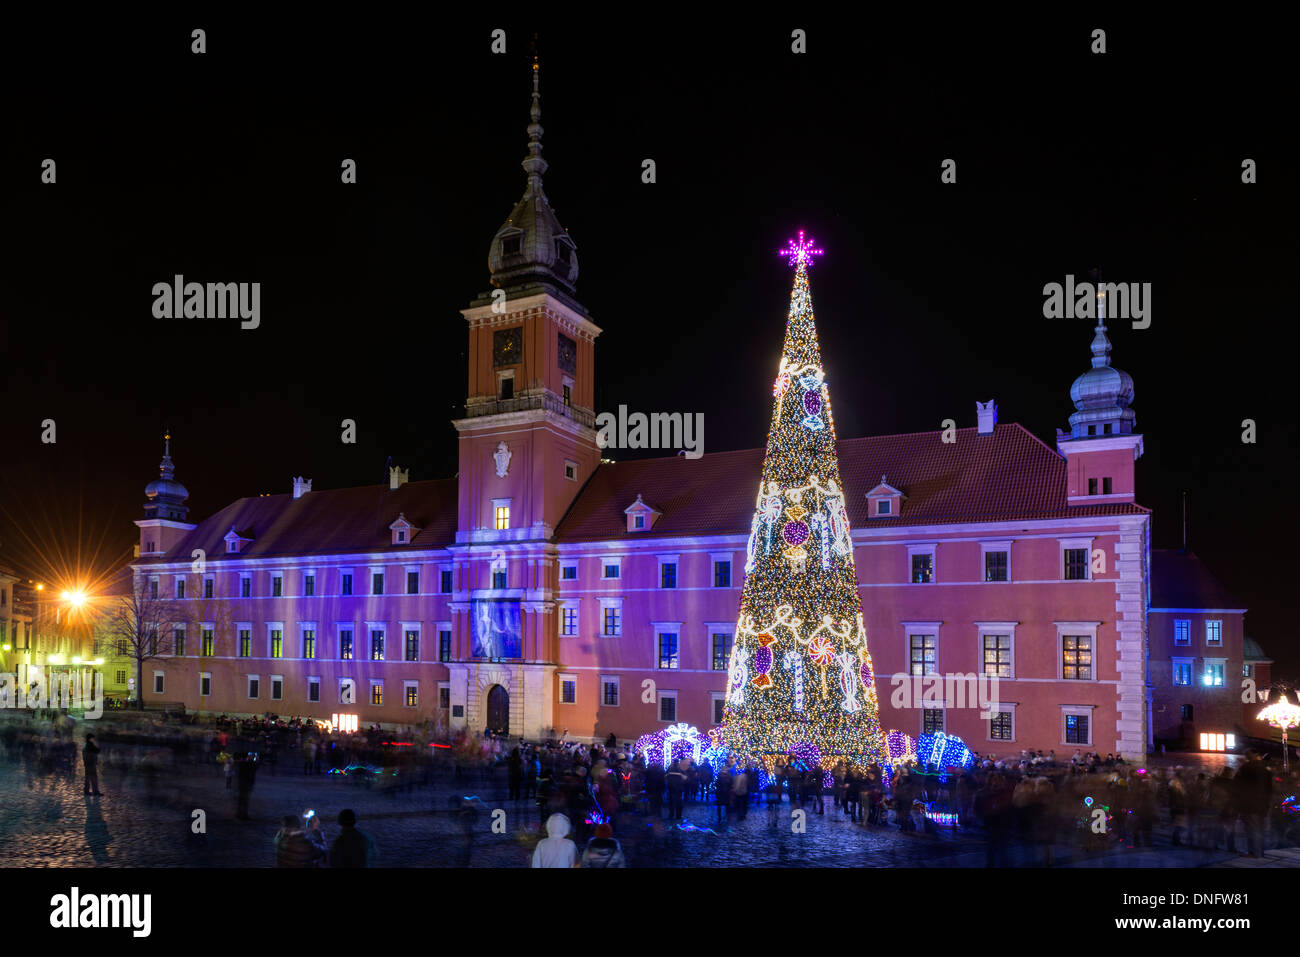 Royal Castle in Warsaw, Poland during Christmas time 2013 - Stock Image